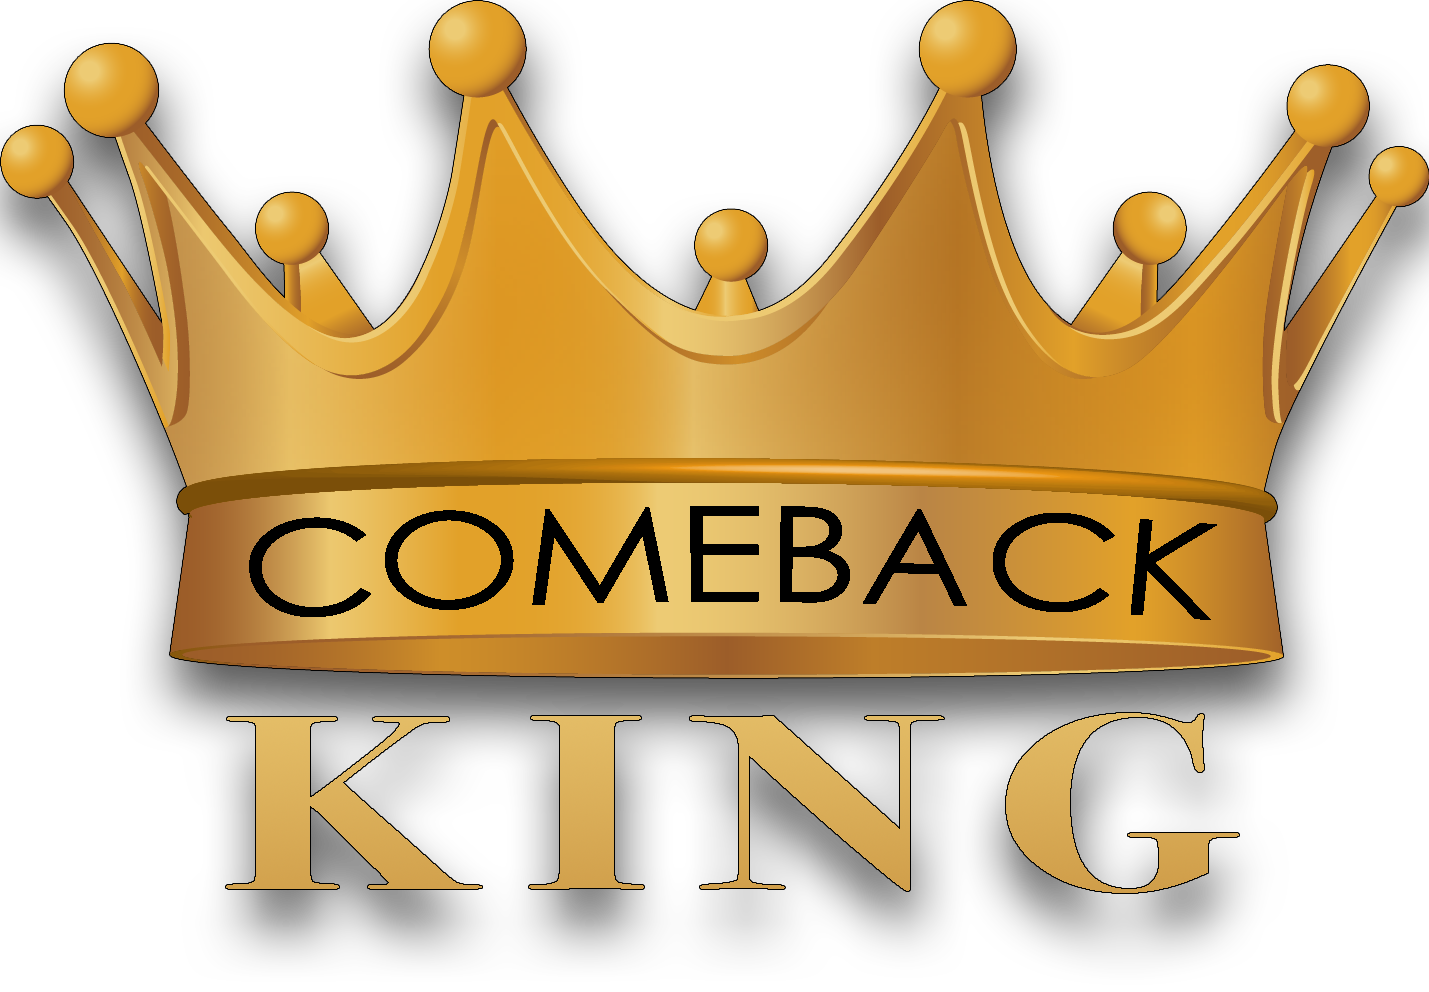 Comeback King – But it's not my fault! (Paul)